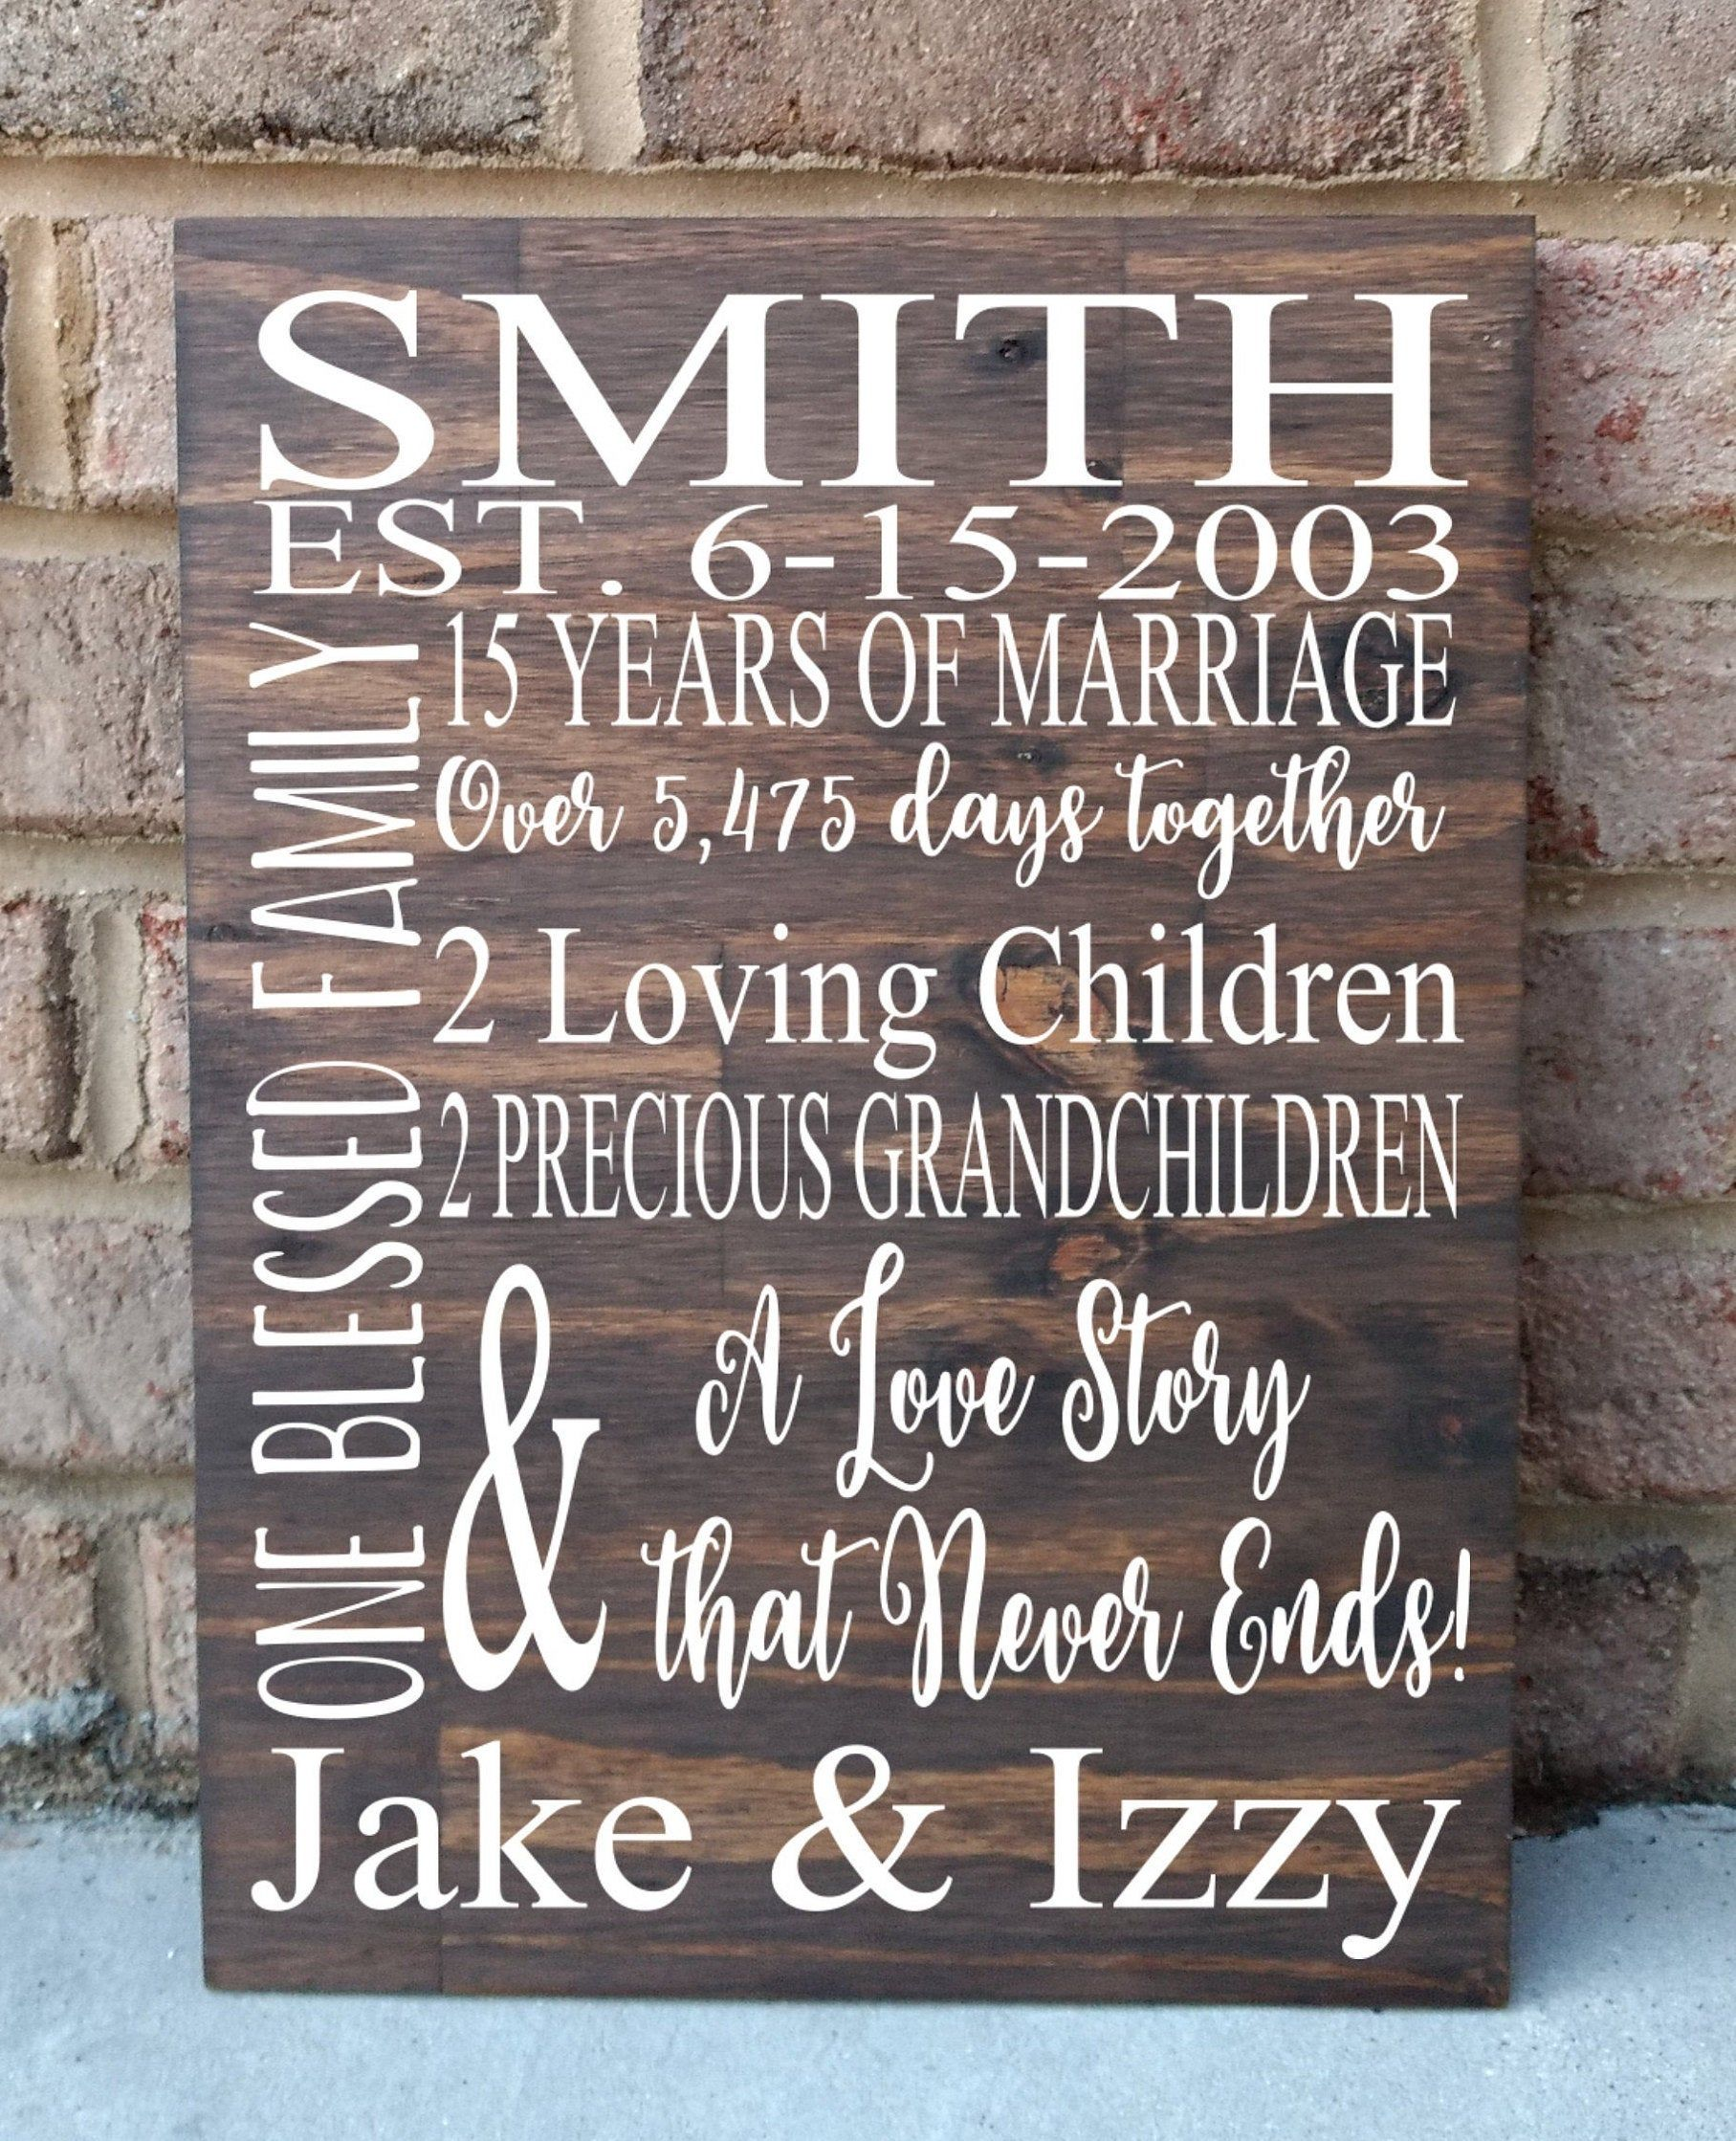 15 Years Of Marriage Hand Painted Wood Sign 15th Anniversary Etsy In 2020 40th Anniversary Gifts 15th Anniversary Gift Anniversary Sign